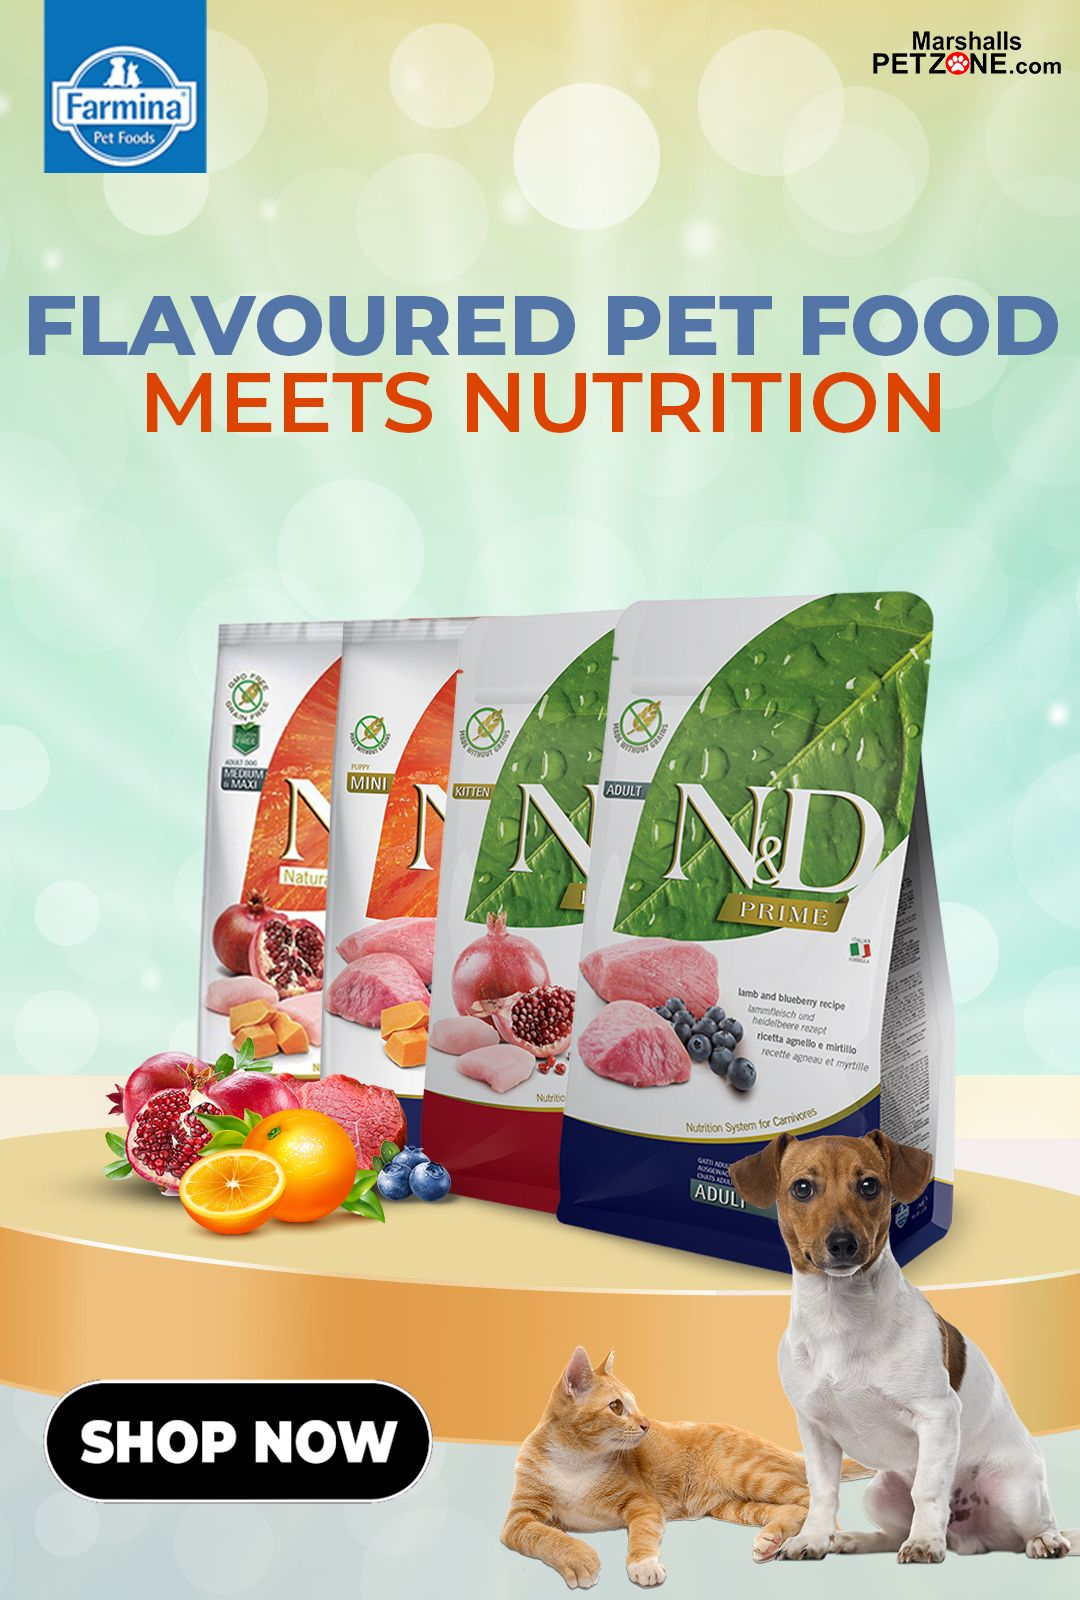 Farmina flavoured pet food meets nutrition in 2020 food